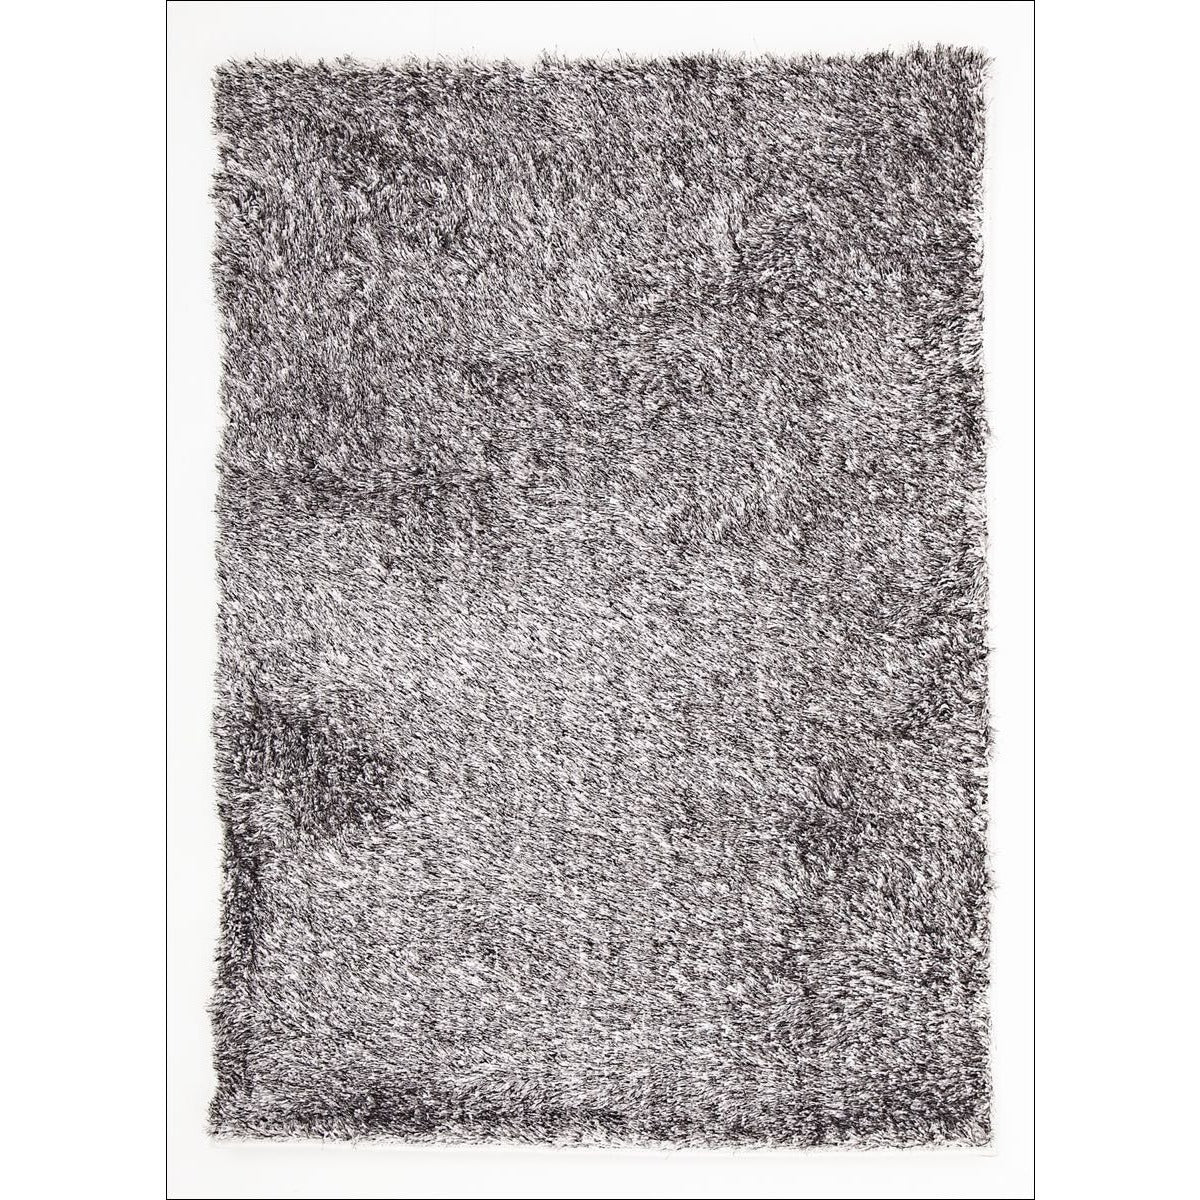 twilight shag rug  black and white modern shaggy rug – rugs of beauty - twilight shag rug  black and white modern shaggy rug  rugs of beauty